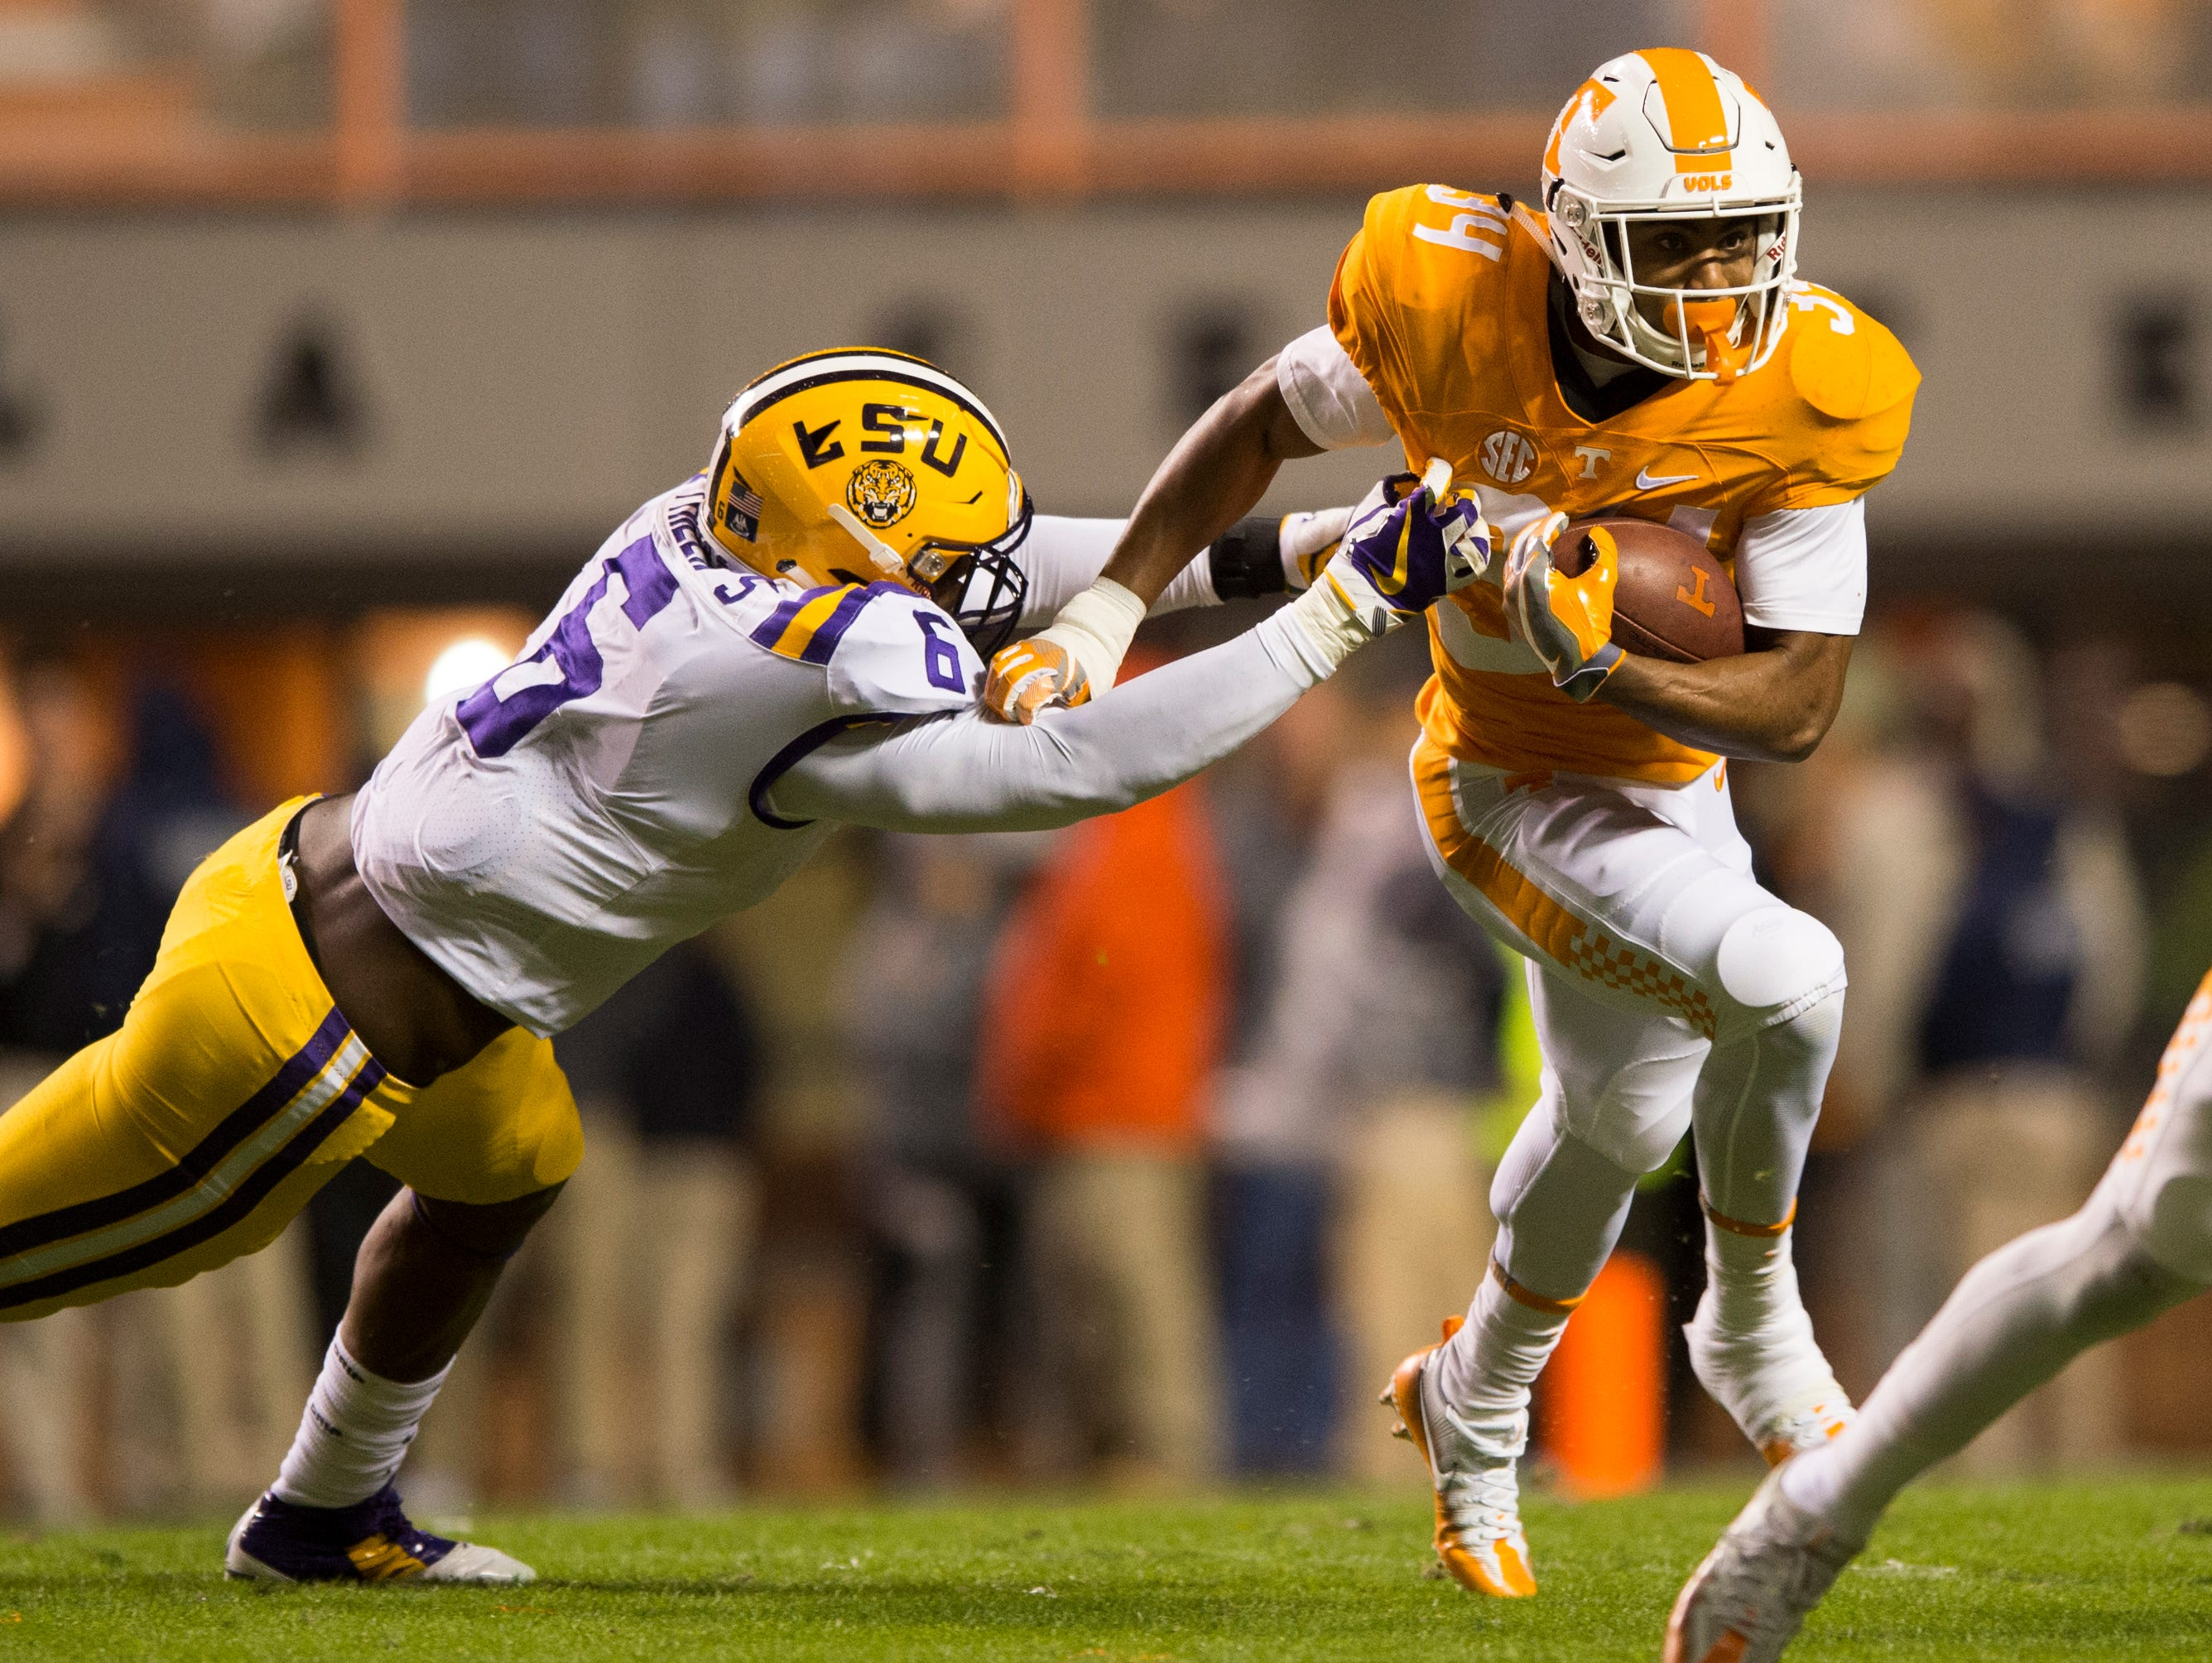 Tennessee's Malik Elion (34) escapes a tackle by LSU linebacker Jacob Phillips (6) during a game between Tennessee and LSU at Neyland Stadium in Knoxville, Tenn., on Saturday, Nov. 18, 2017.